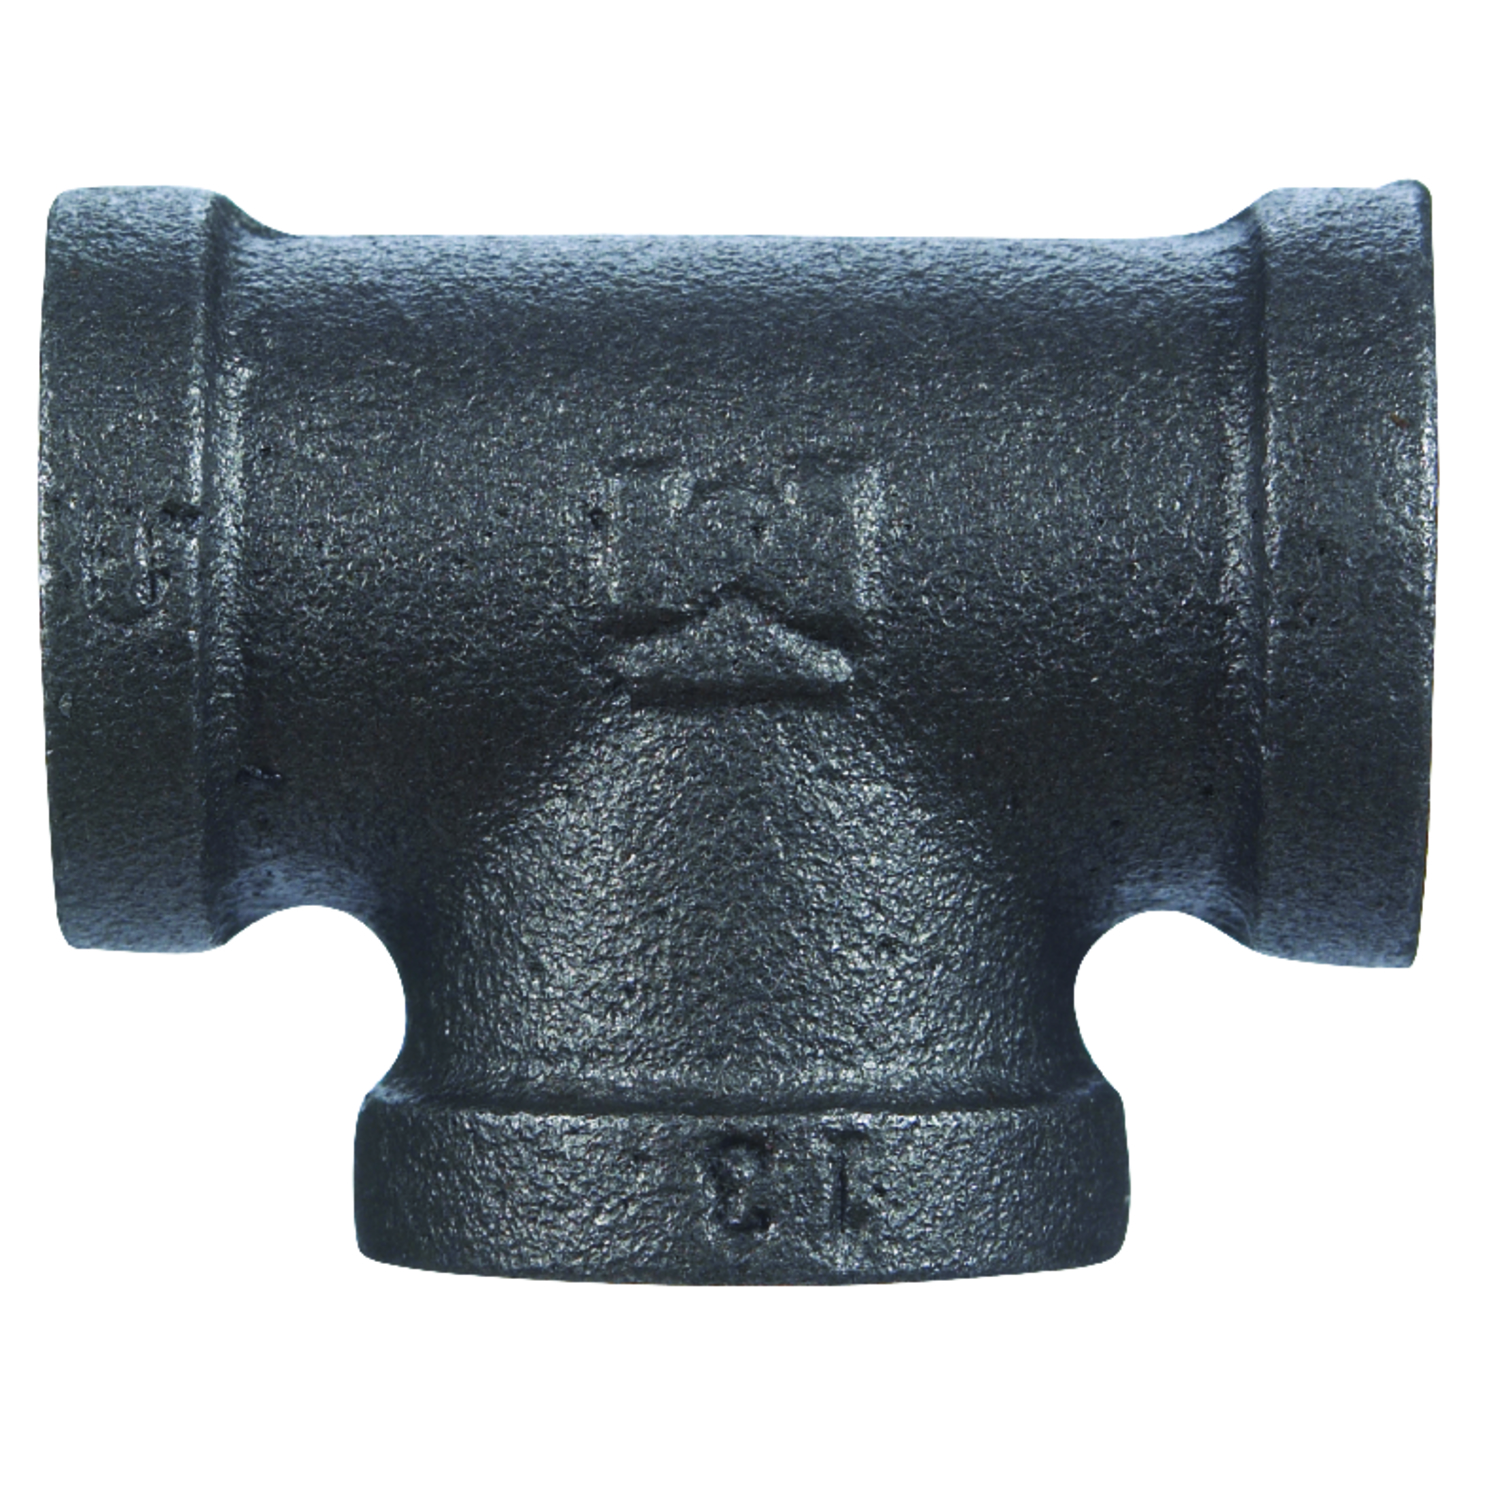 B & K  1/2 in. FPT   x 1/2 in. Dia. FPT  Black  Malleable Iron  Tee